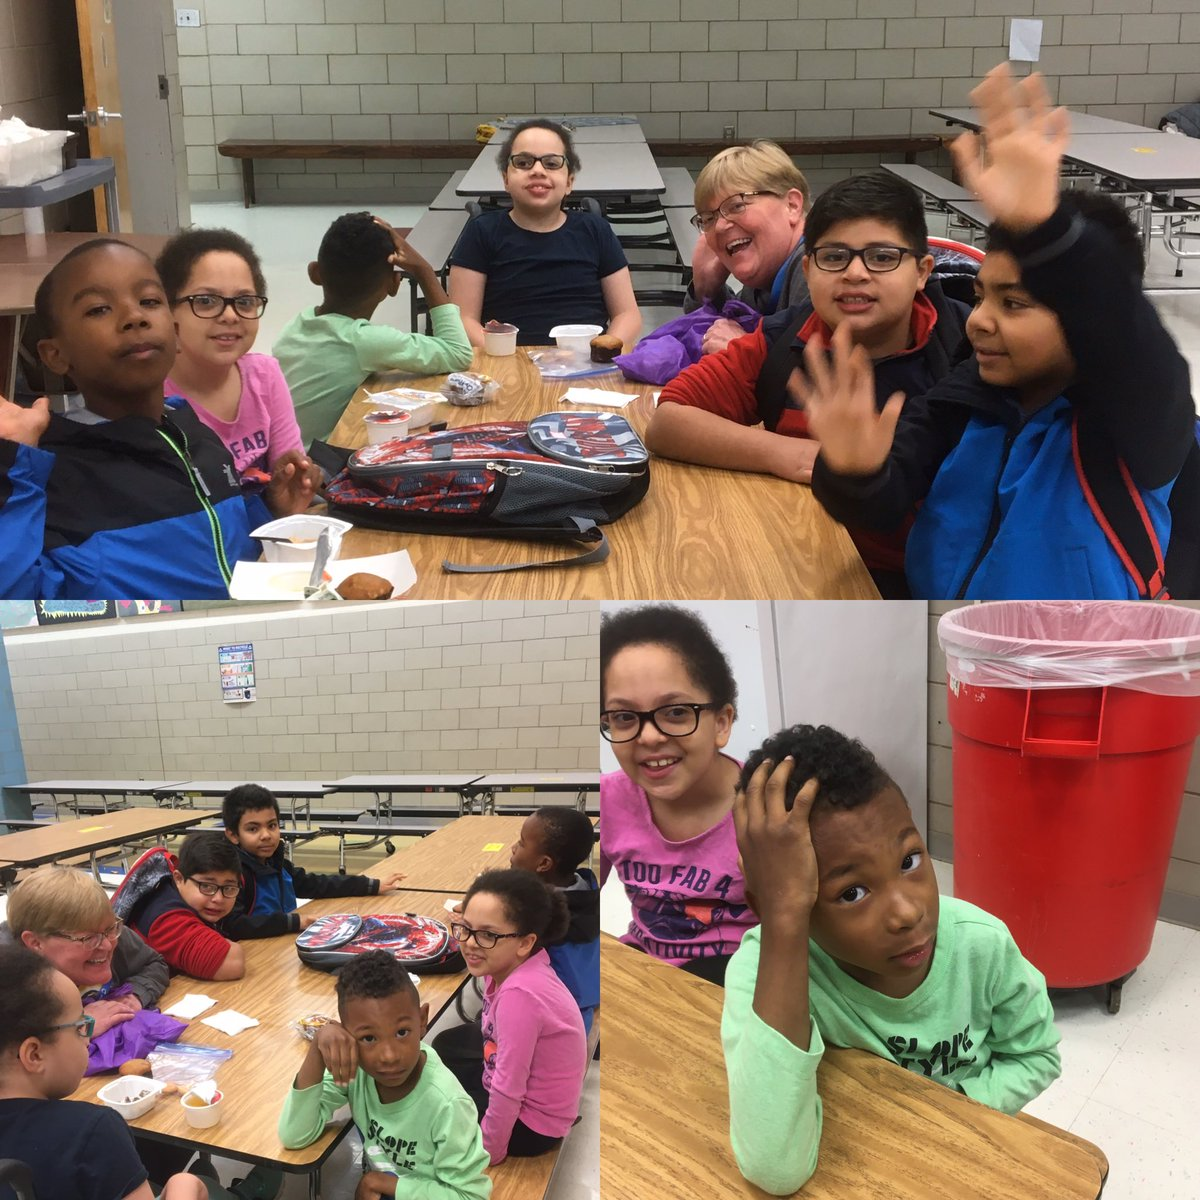 Ms Theodore's class starts the day with a good breakfast for a great day of learning <a target='_blank' href='http://twitter.com/GlebeAPS'>@GlebeAPS</a> <a target='_blank' href='http://twitter.com/GlebeITC'>@GlebeITC</a> <a target='_blank' href='https://t.co/CJg9xk1p3u'>https://t.co/CJg9xk1p3u</a>